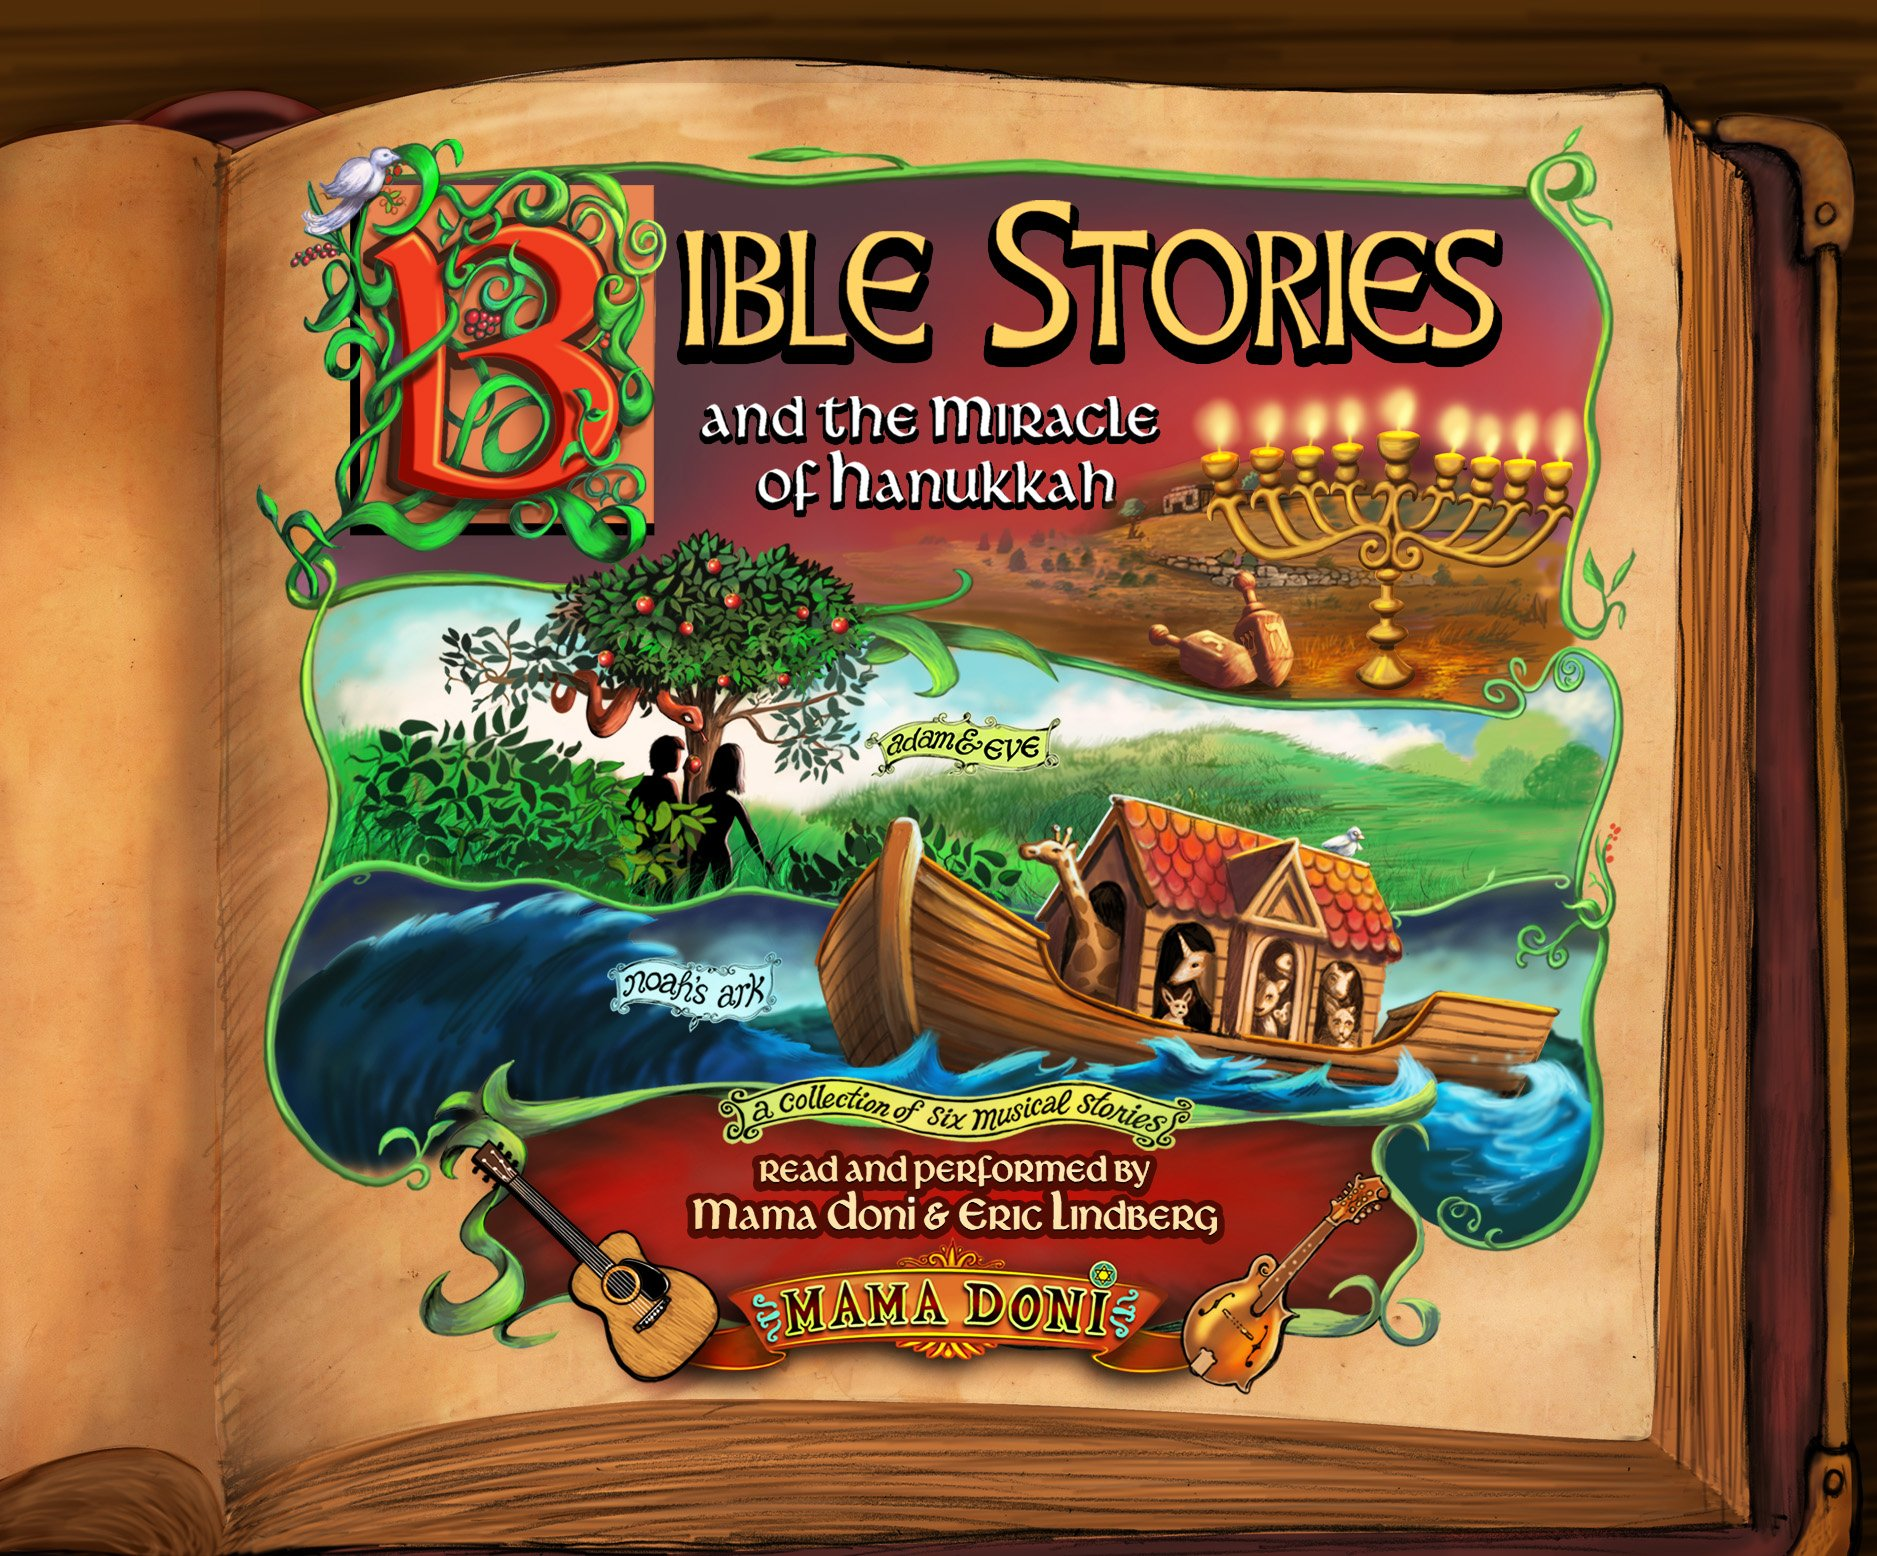 Bible Stories and the Miracle of Hanukkah by Dreamscape Media